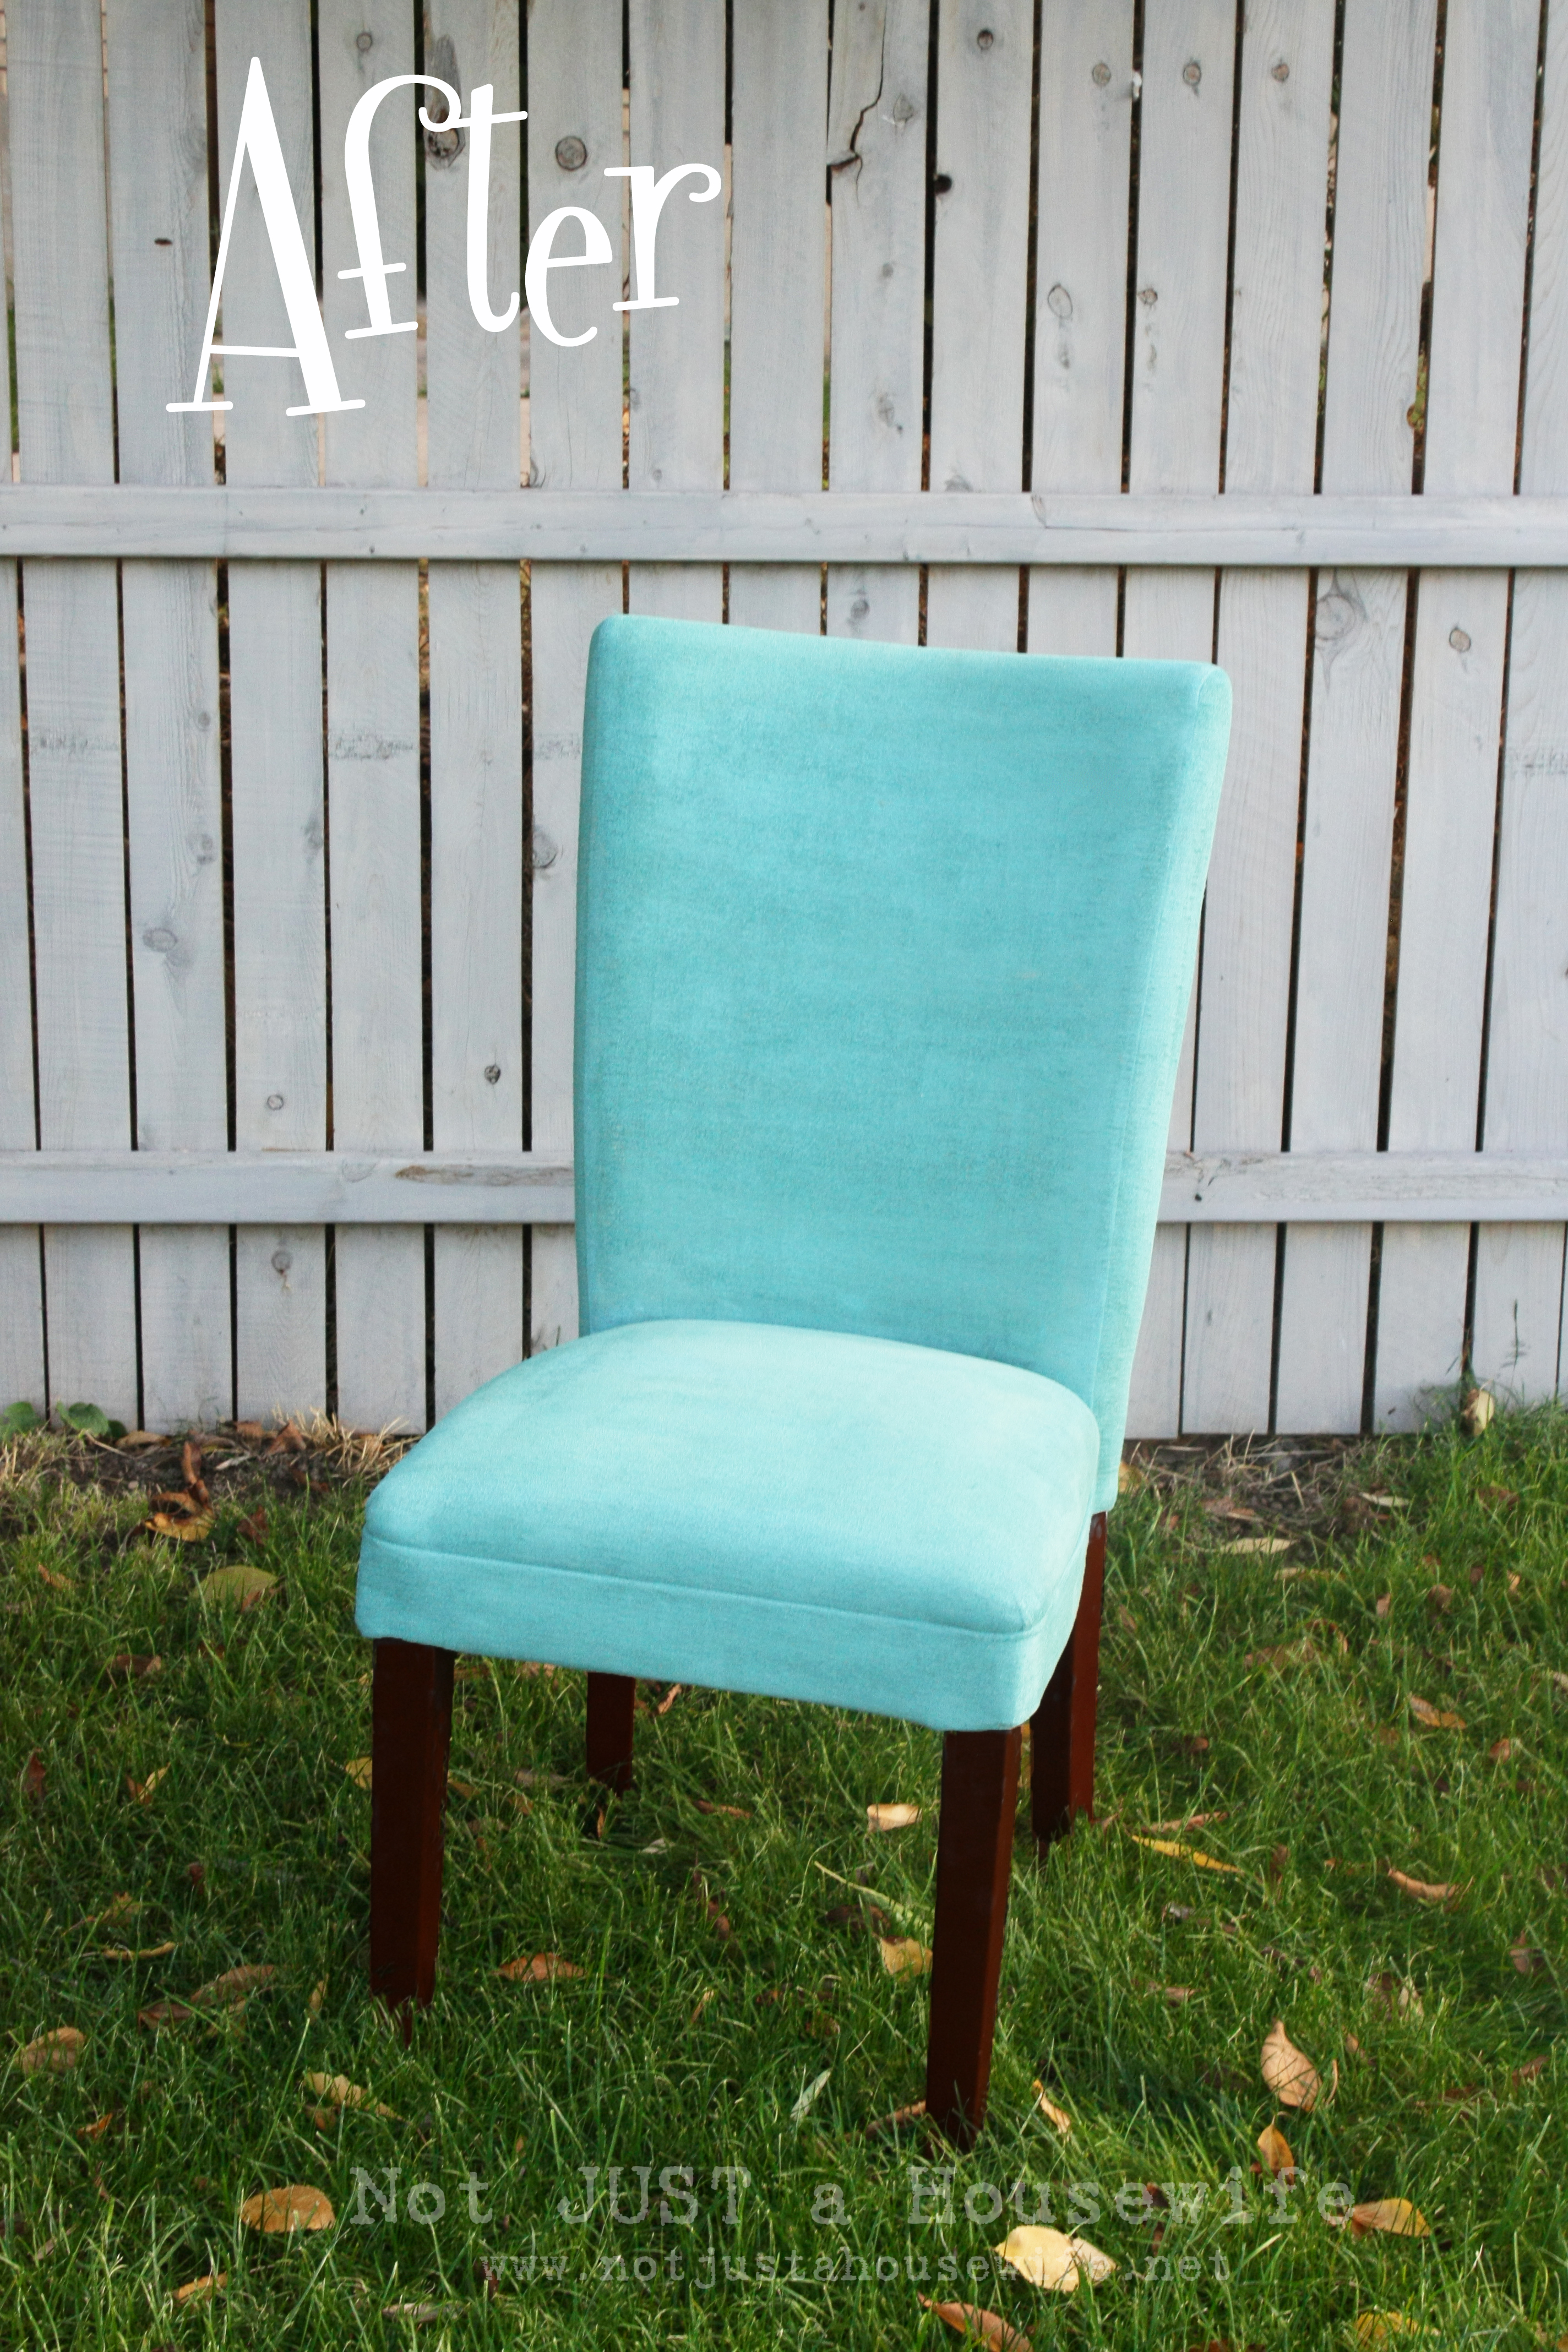 Diy chair upholstery - Just